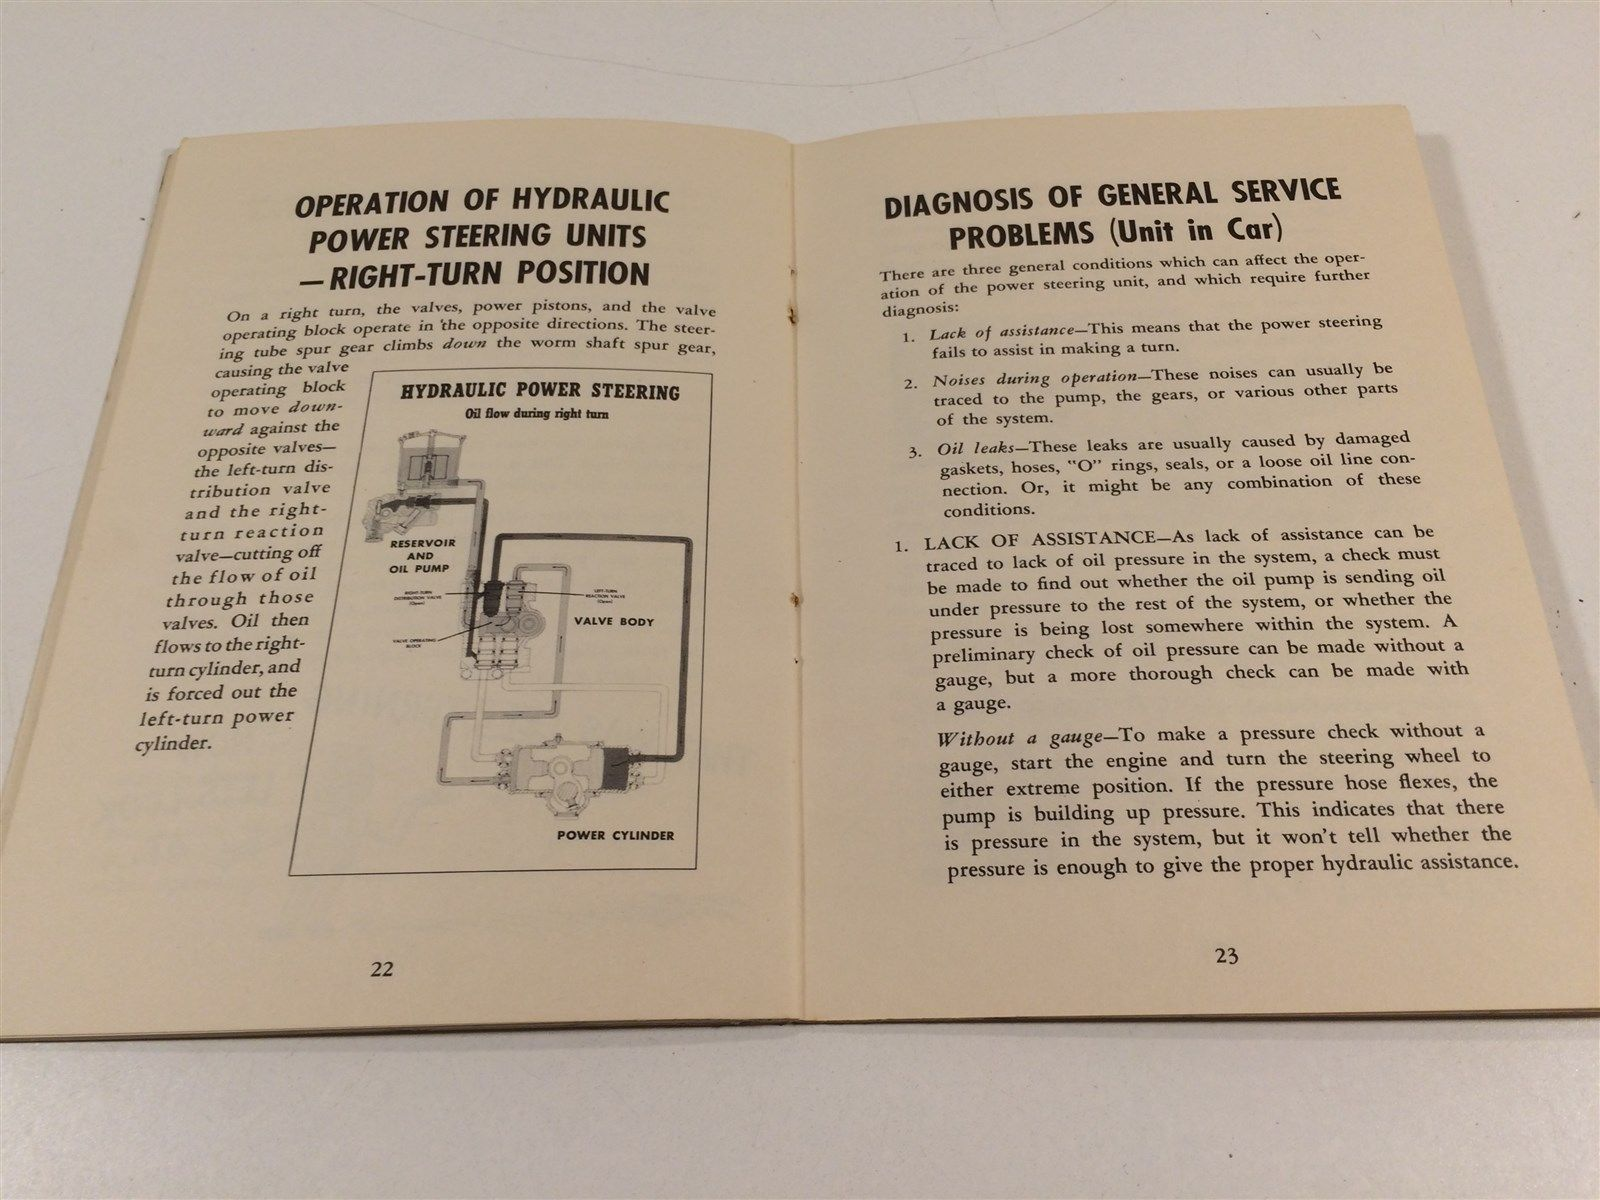 1952 Chrysler Corporation Service Reference Book V5 No2 Hydraulic Power Steering